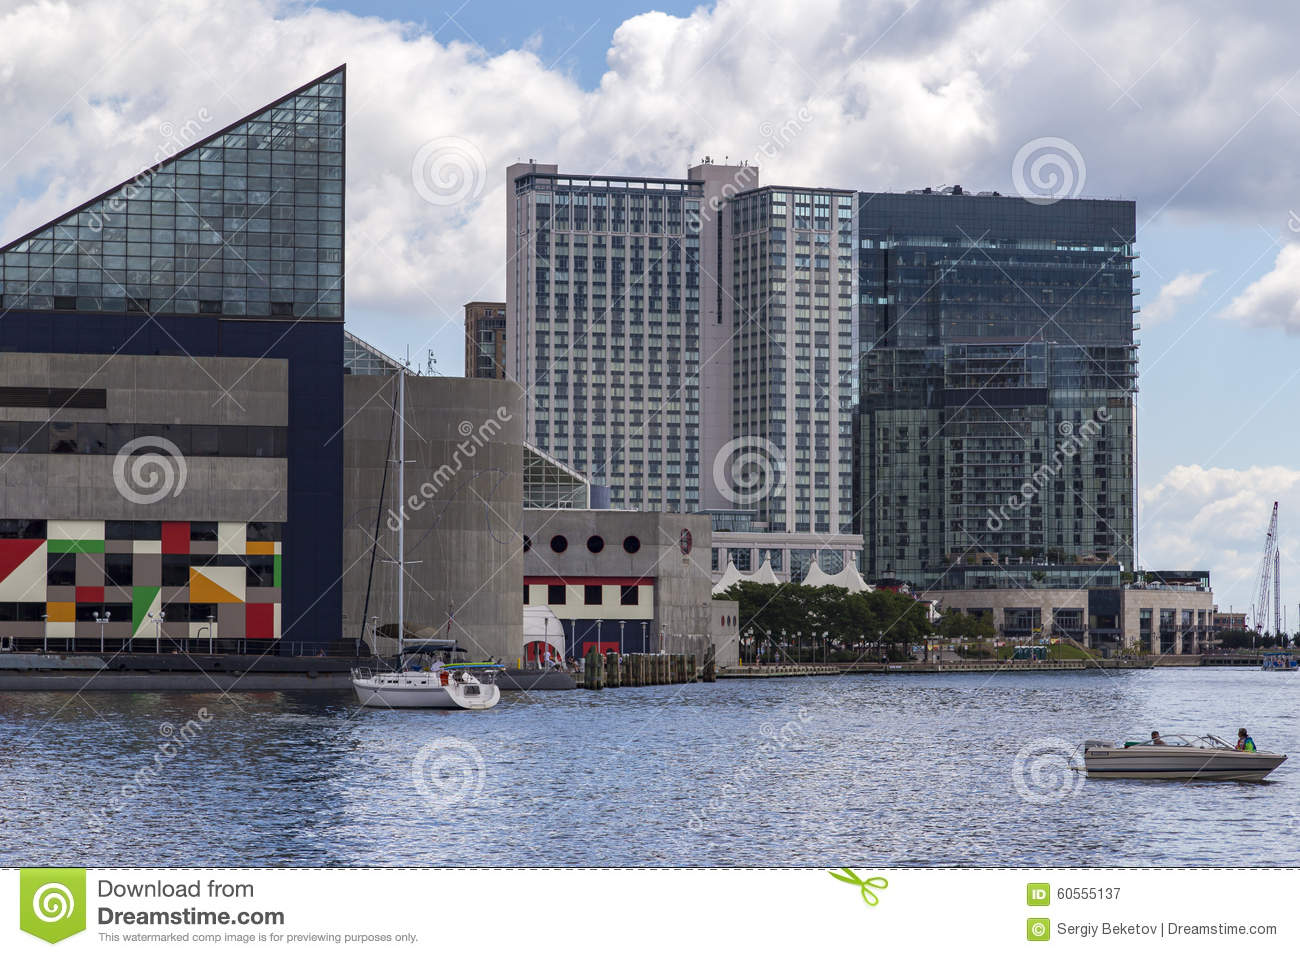 National Aquarium and office buildings at Inner Harbor of Baltimore, USA